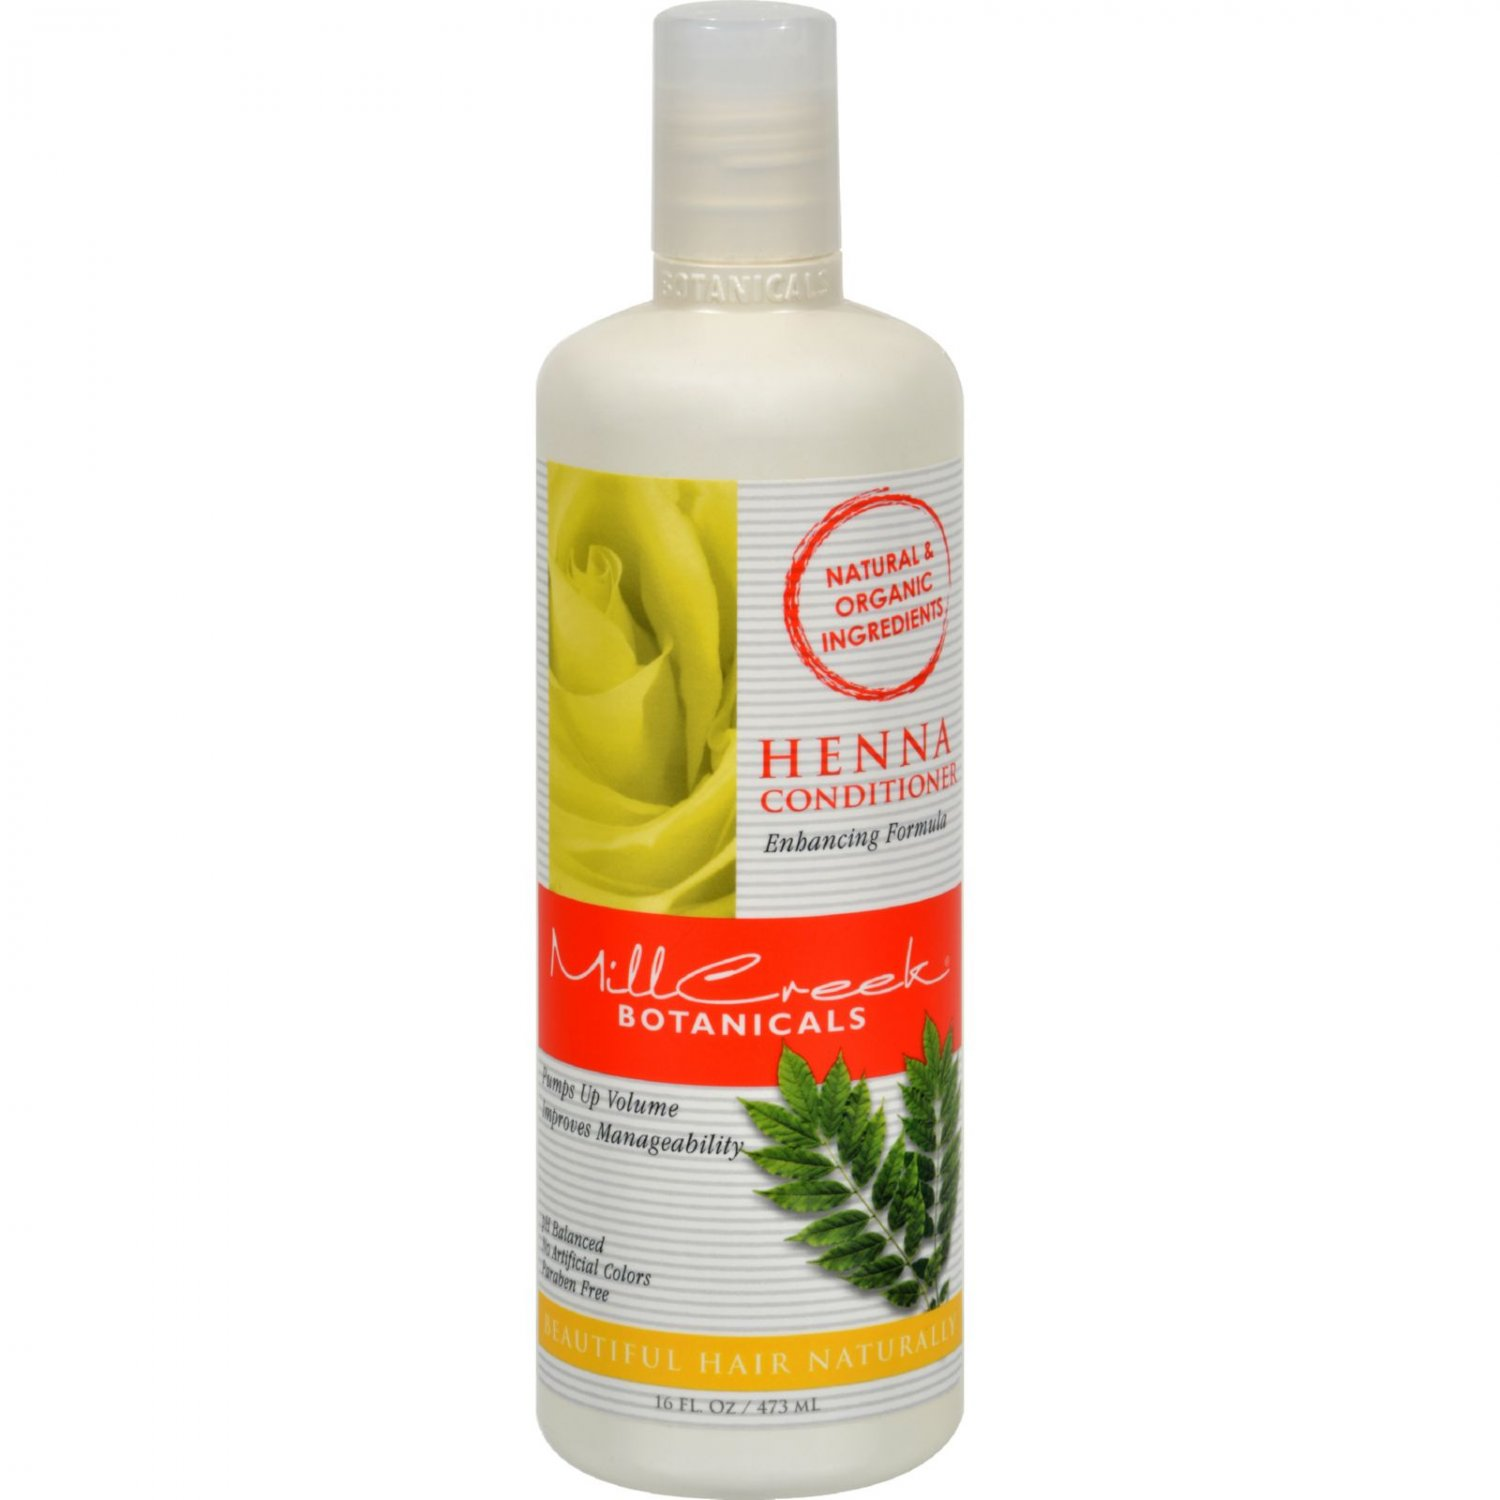 Mill Creek Henna Conditioner - 16 fl oz